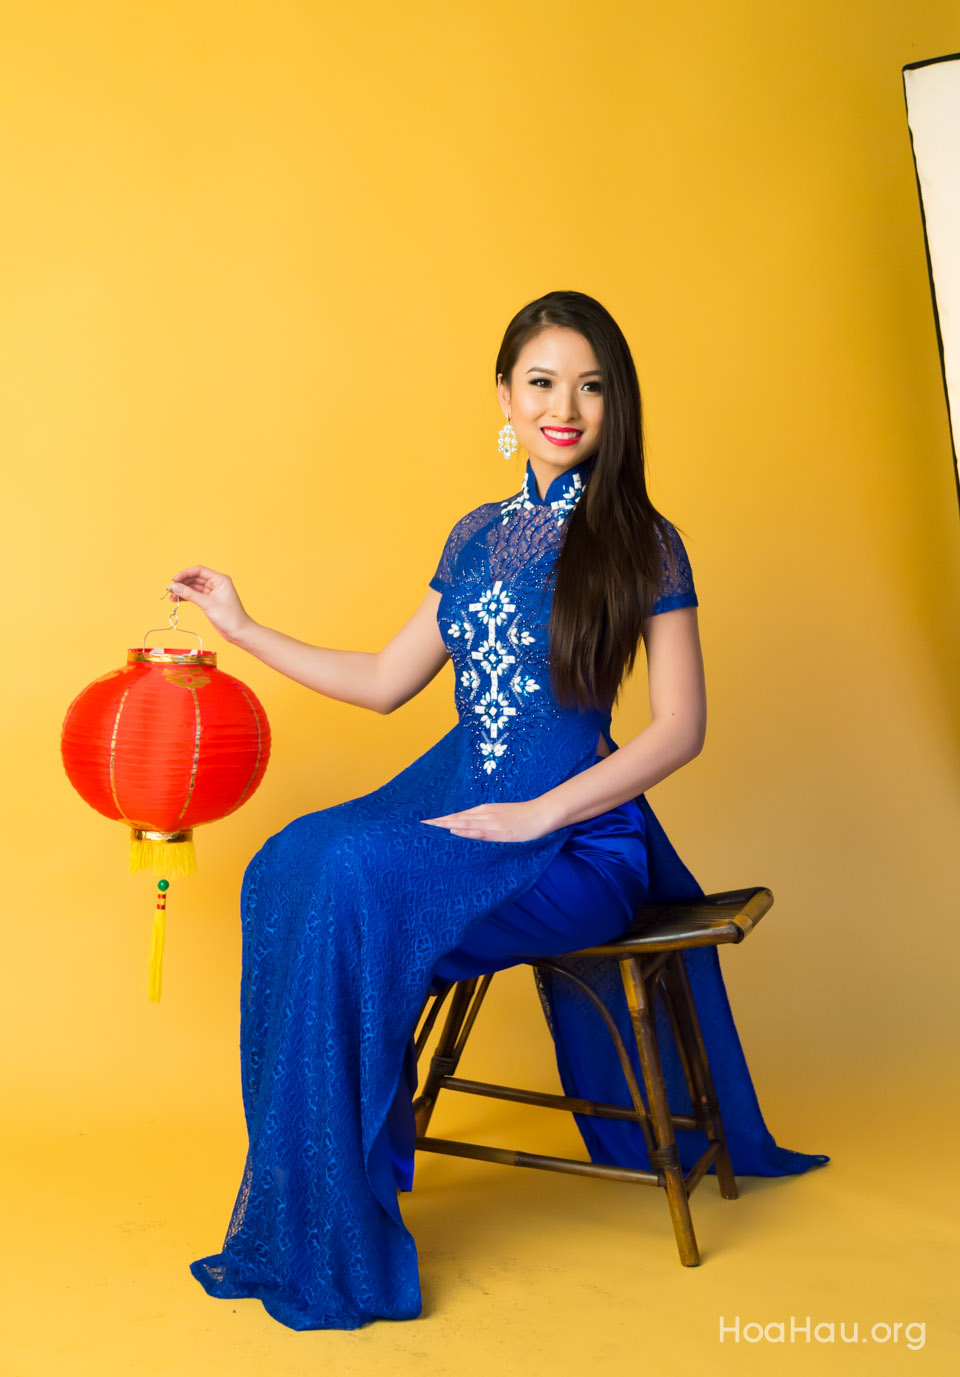 Calendar 2014 Photoshoot - Miss Vietnam of Northern California 2014 - Image 139